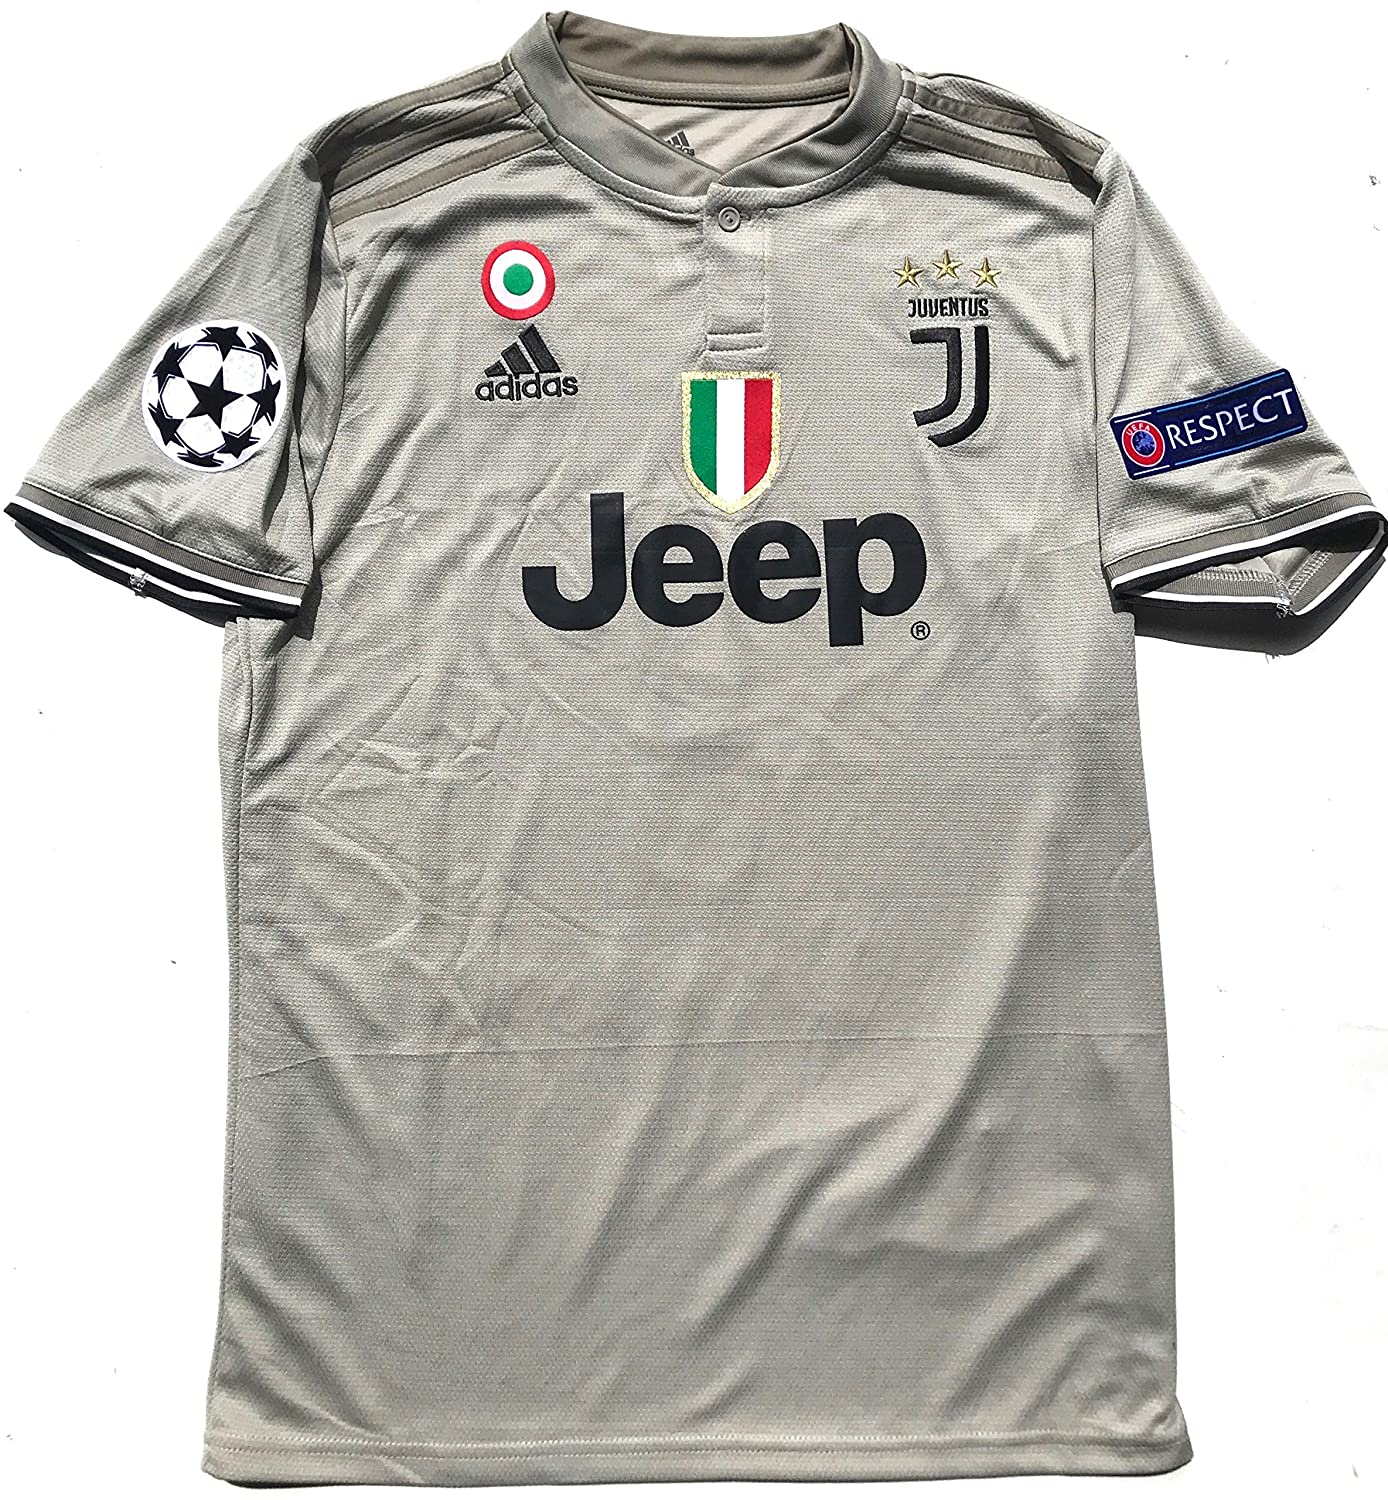 huge discount 5f431 28780 Le Roux Juventus FC 2019 Home Soccer Jersey Men Ronaldo No. #7 on The Back  All Patches - Logos as Original